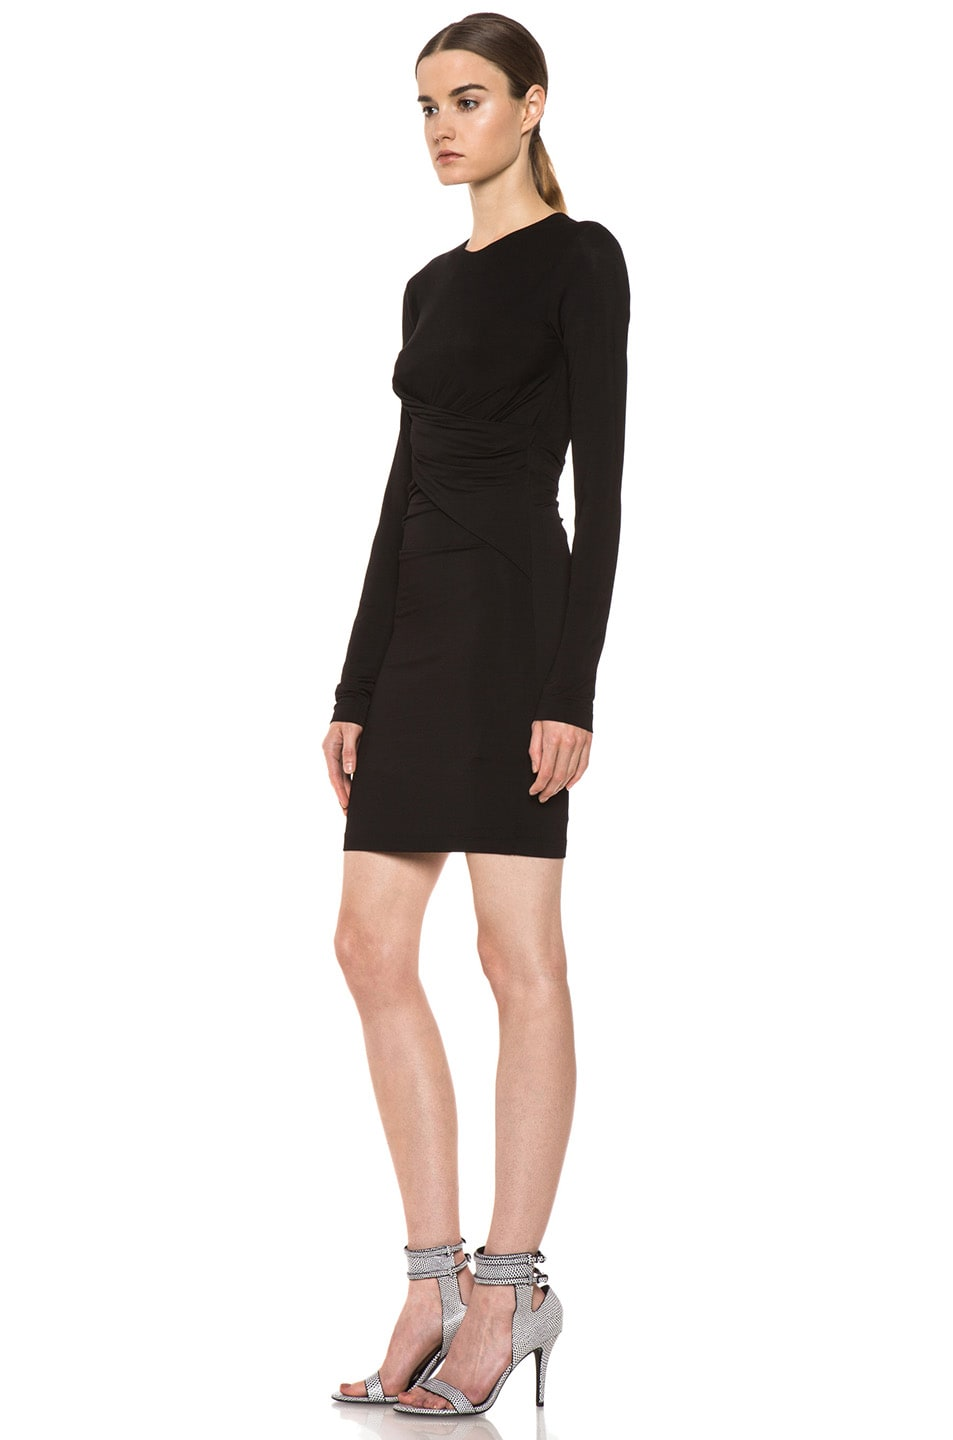 Image 2 of T by Alexander Wang Pique Mesh Long Sleeve Viscose-Blend Twist Dress in Black